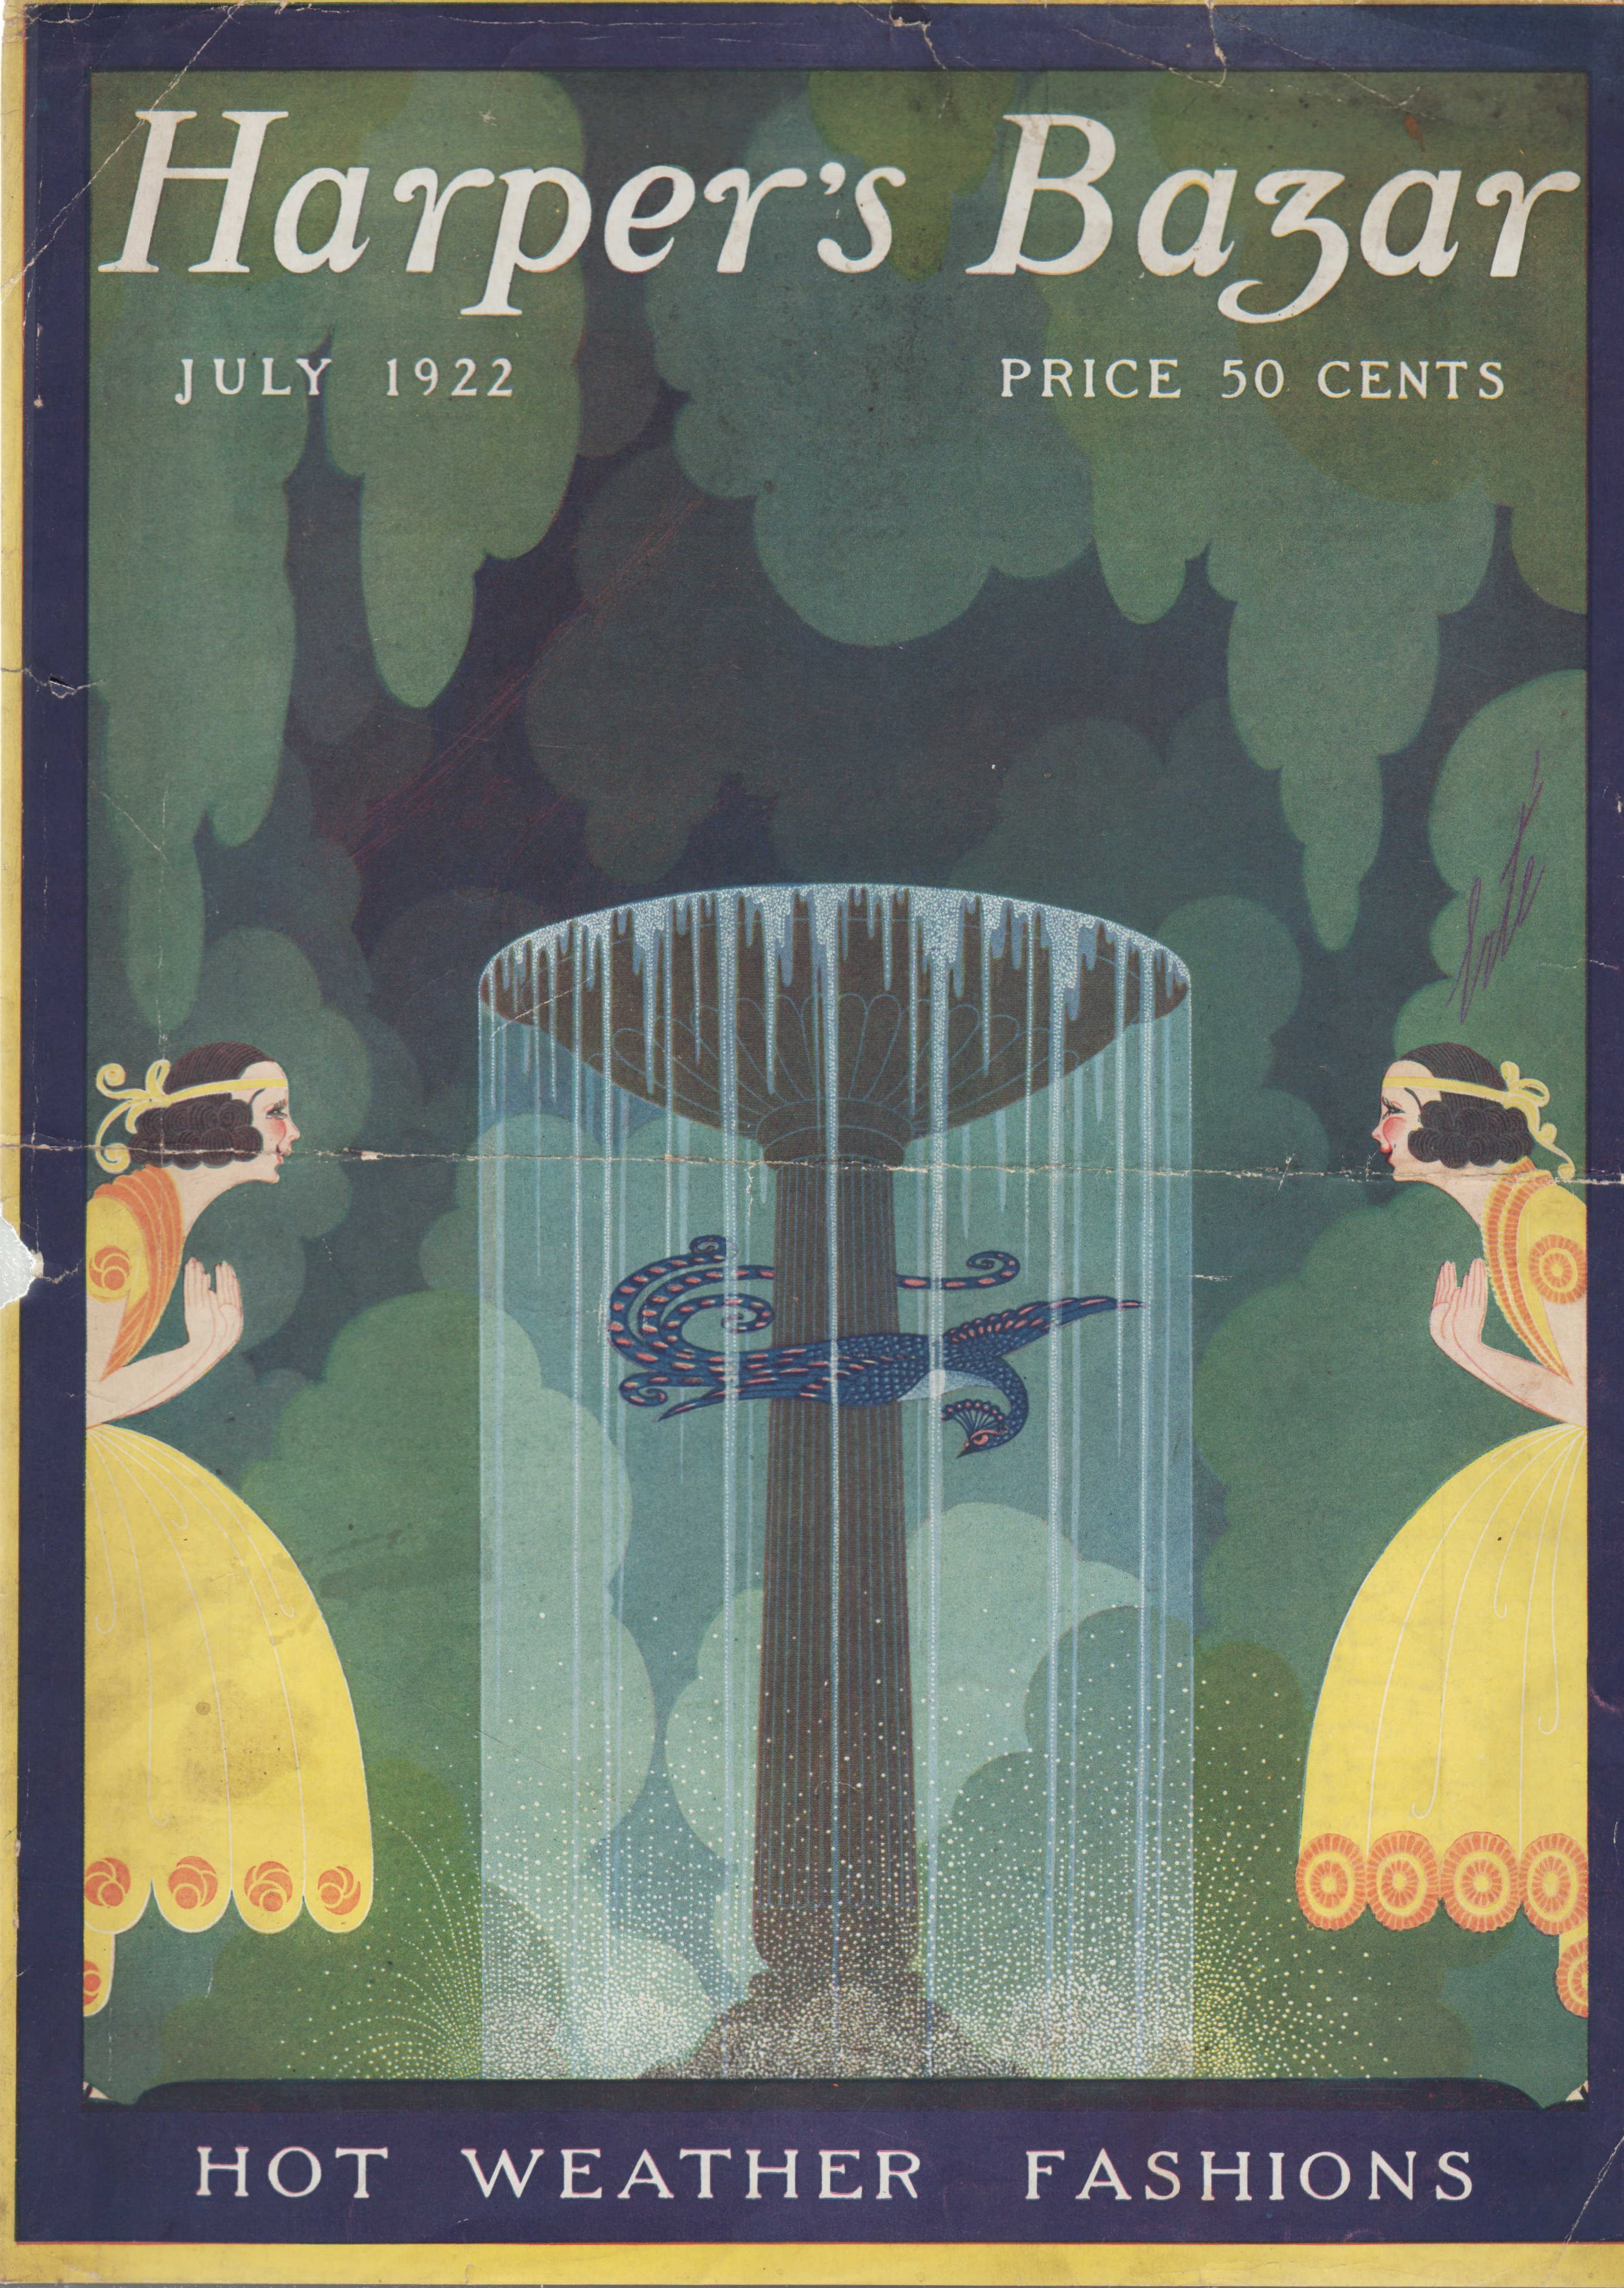 Image for Harper's Bazar (Harper's Bazaar) July, 1922 - Cover Only Hot Weather Fashions